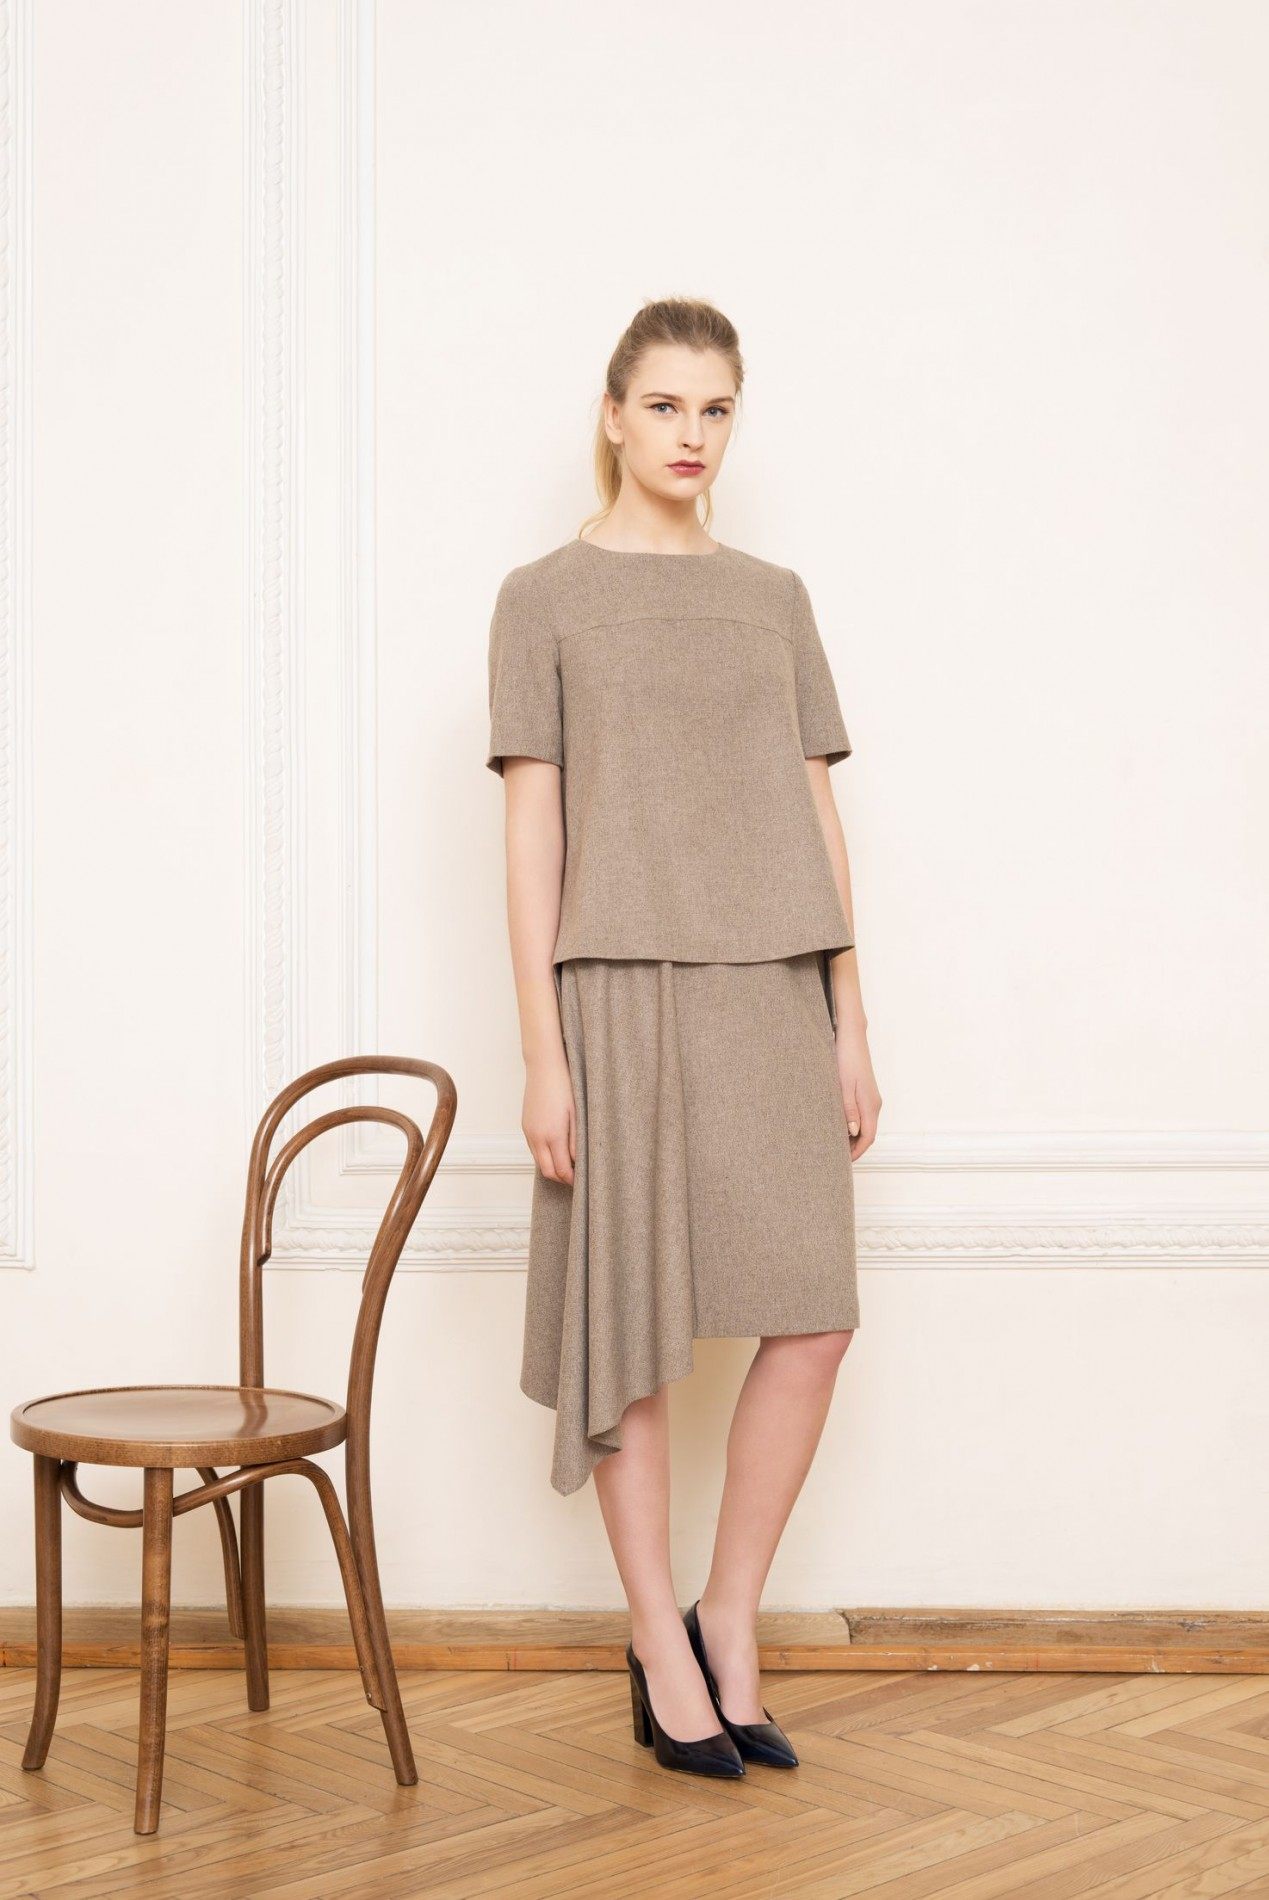 ALPS Pleat Blouse and ALPS Asymmetric Skirt